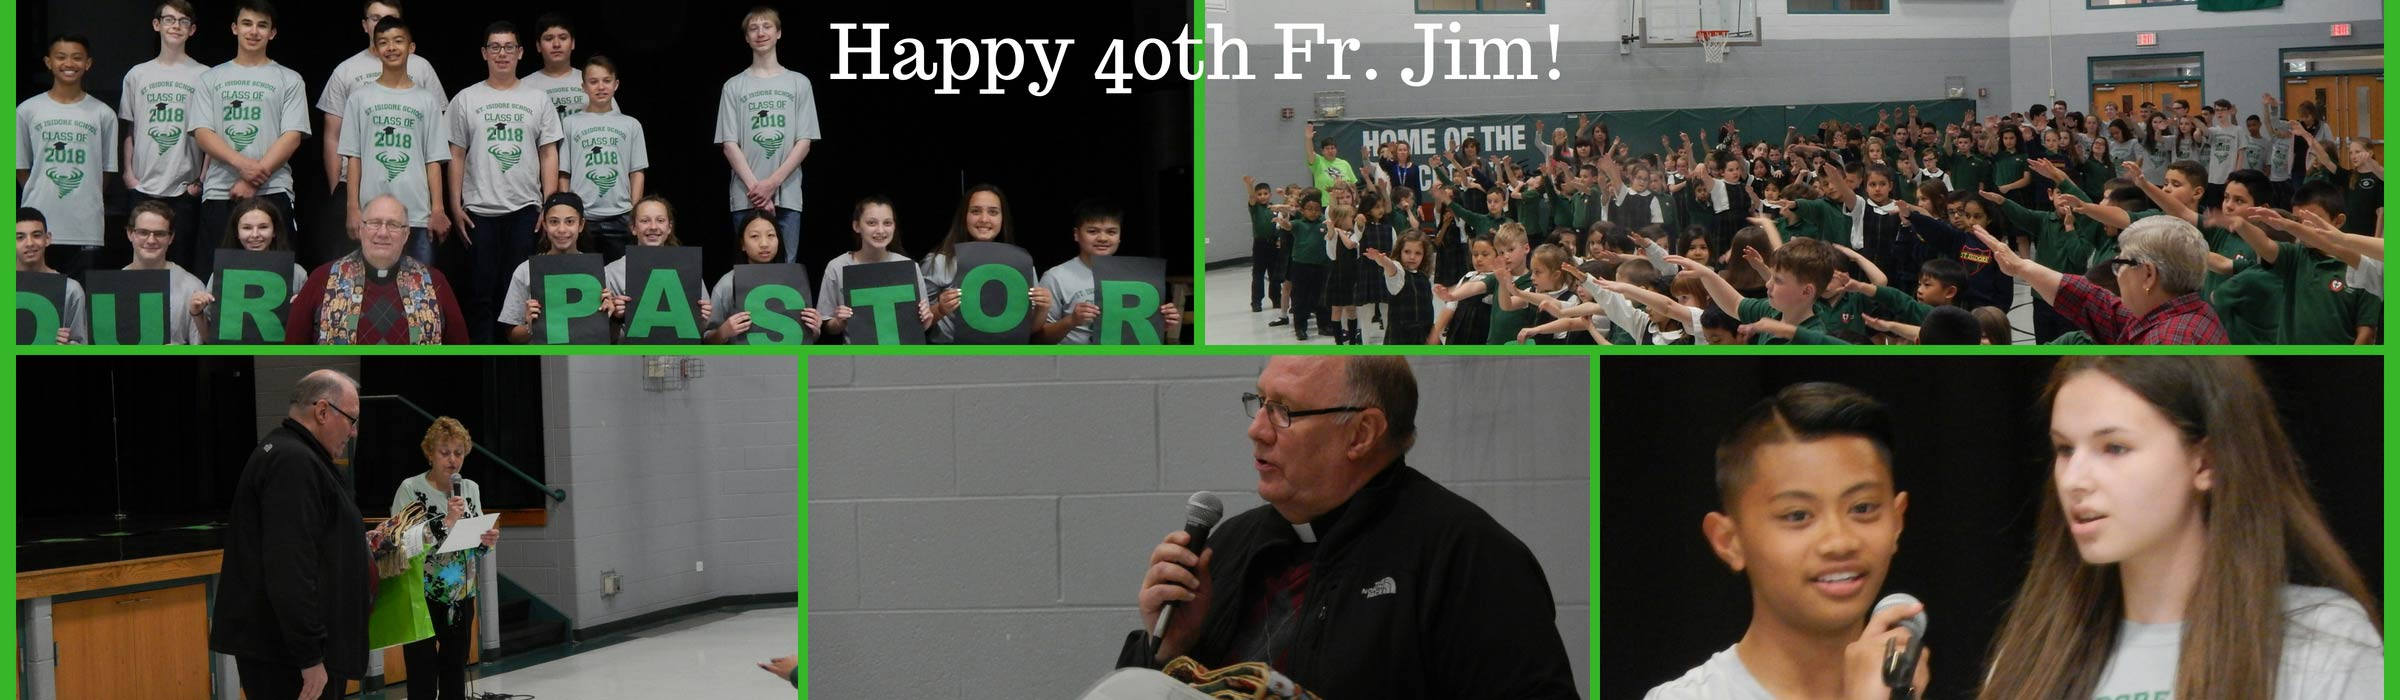 Happy-40th-Fr.-Jim!